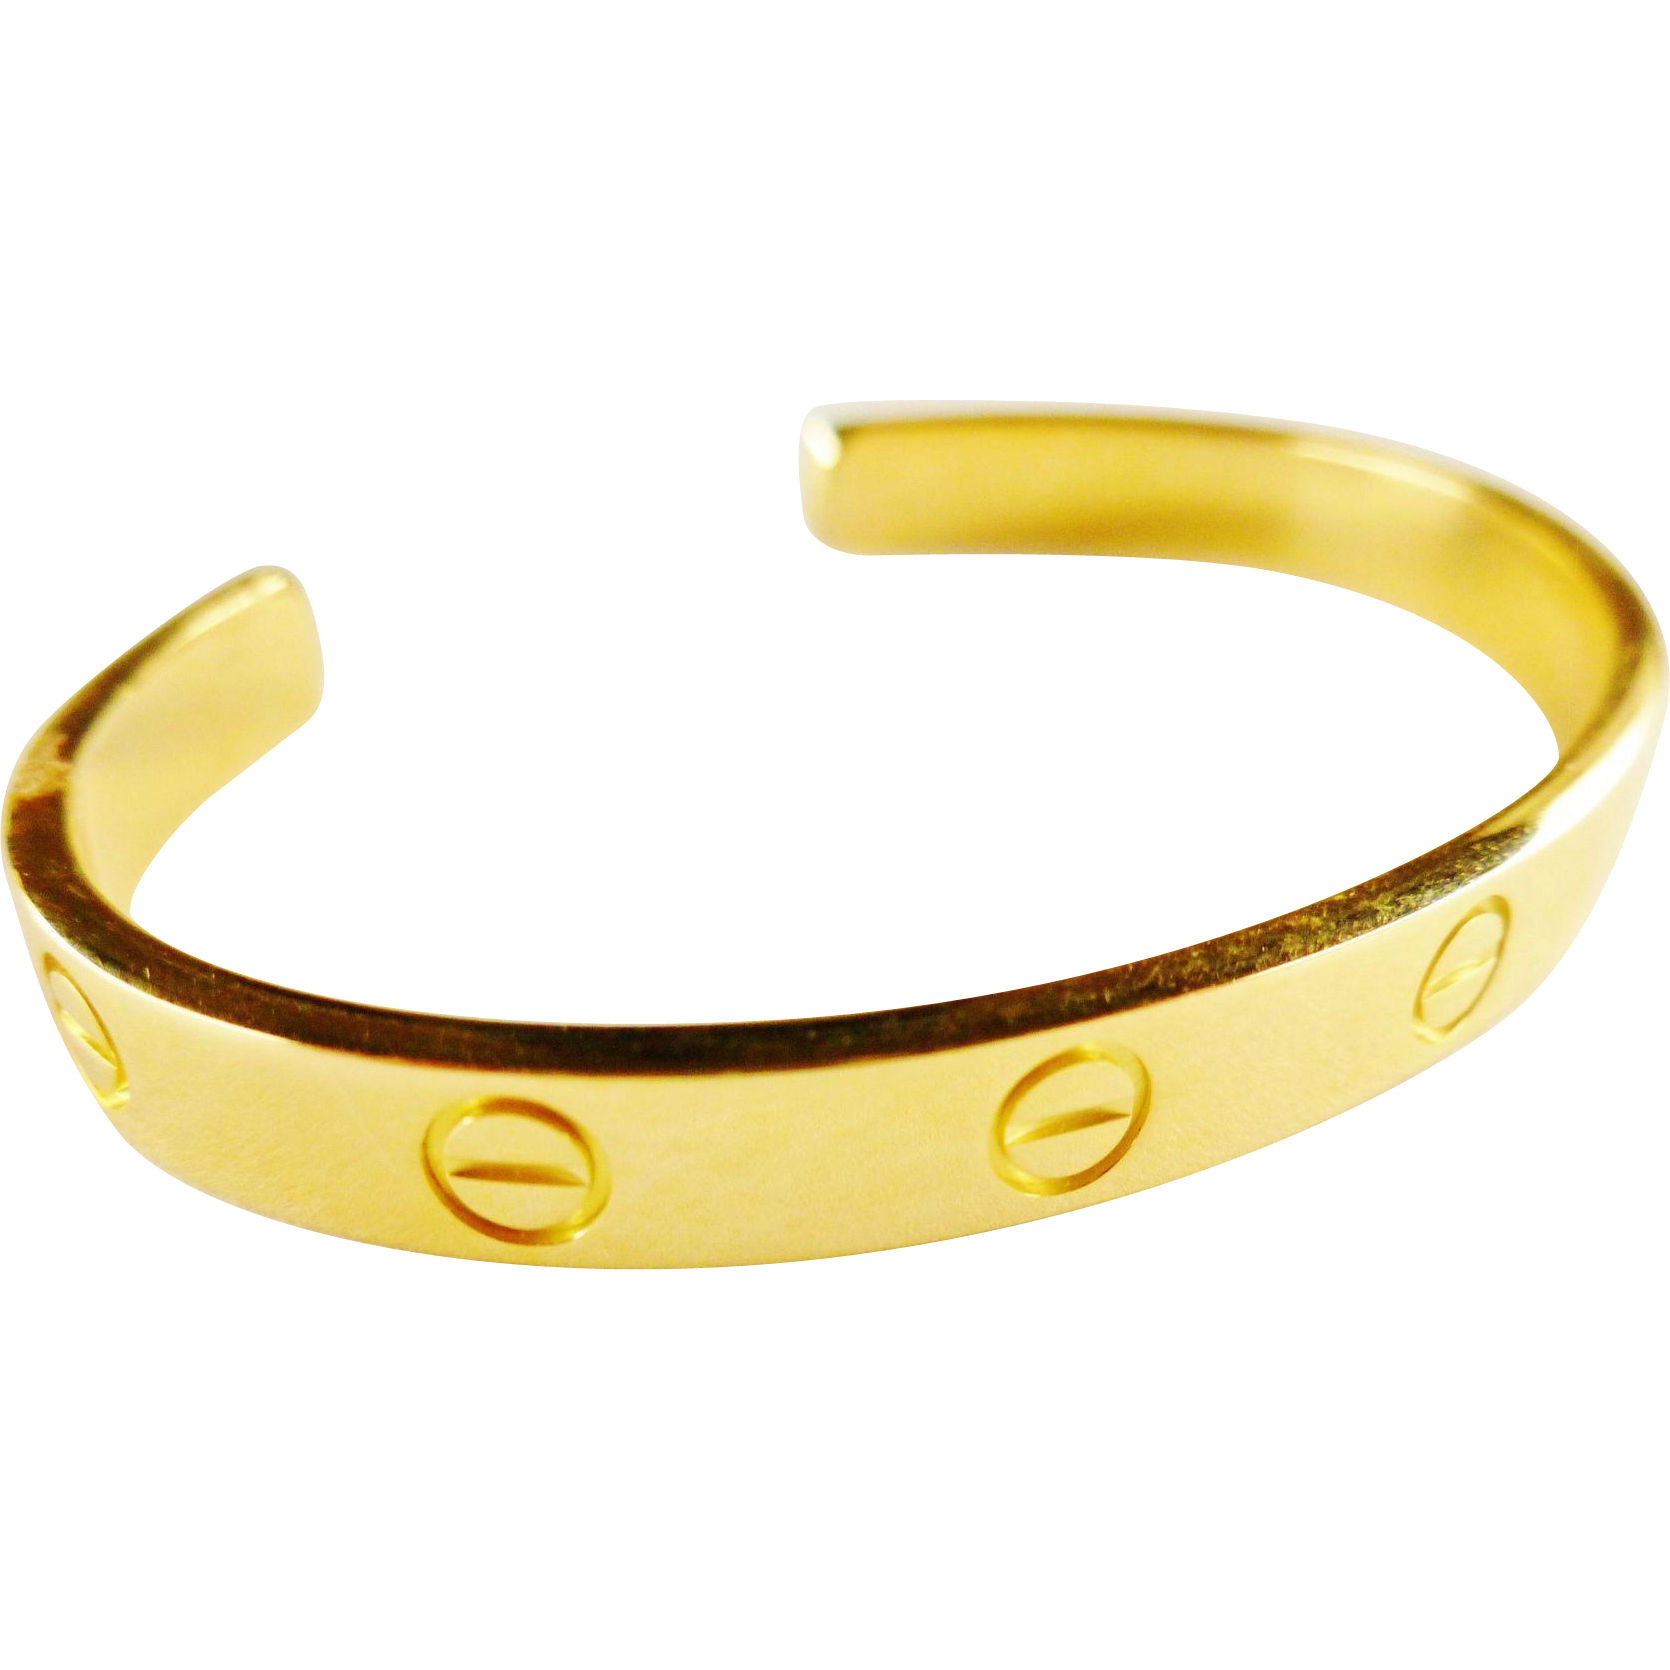 bracelets color plain product bracelet classic bangles fashion gold jewelry cuff large simple women for bangle big wide